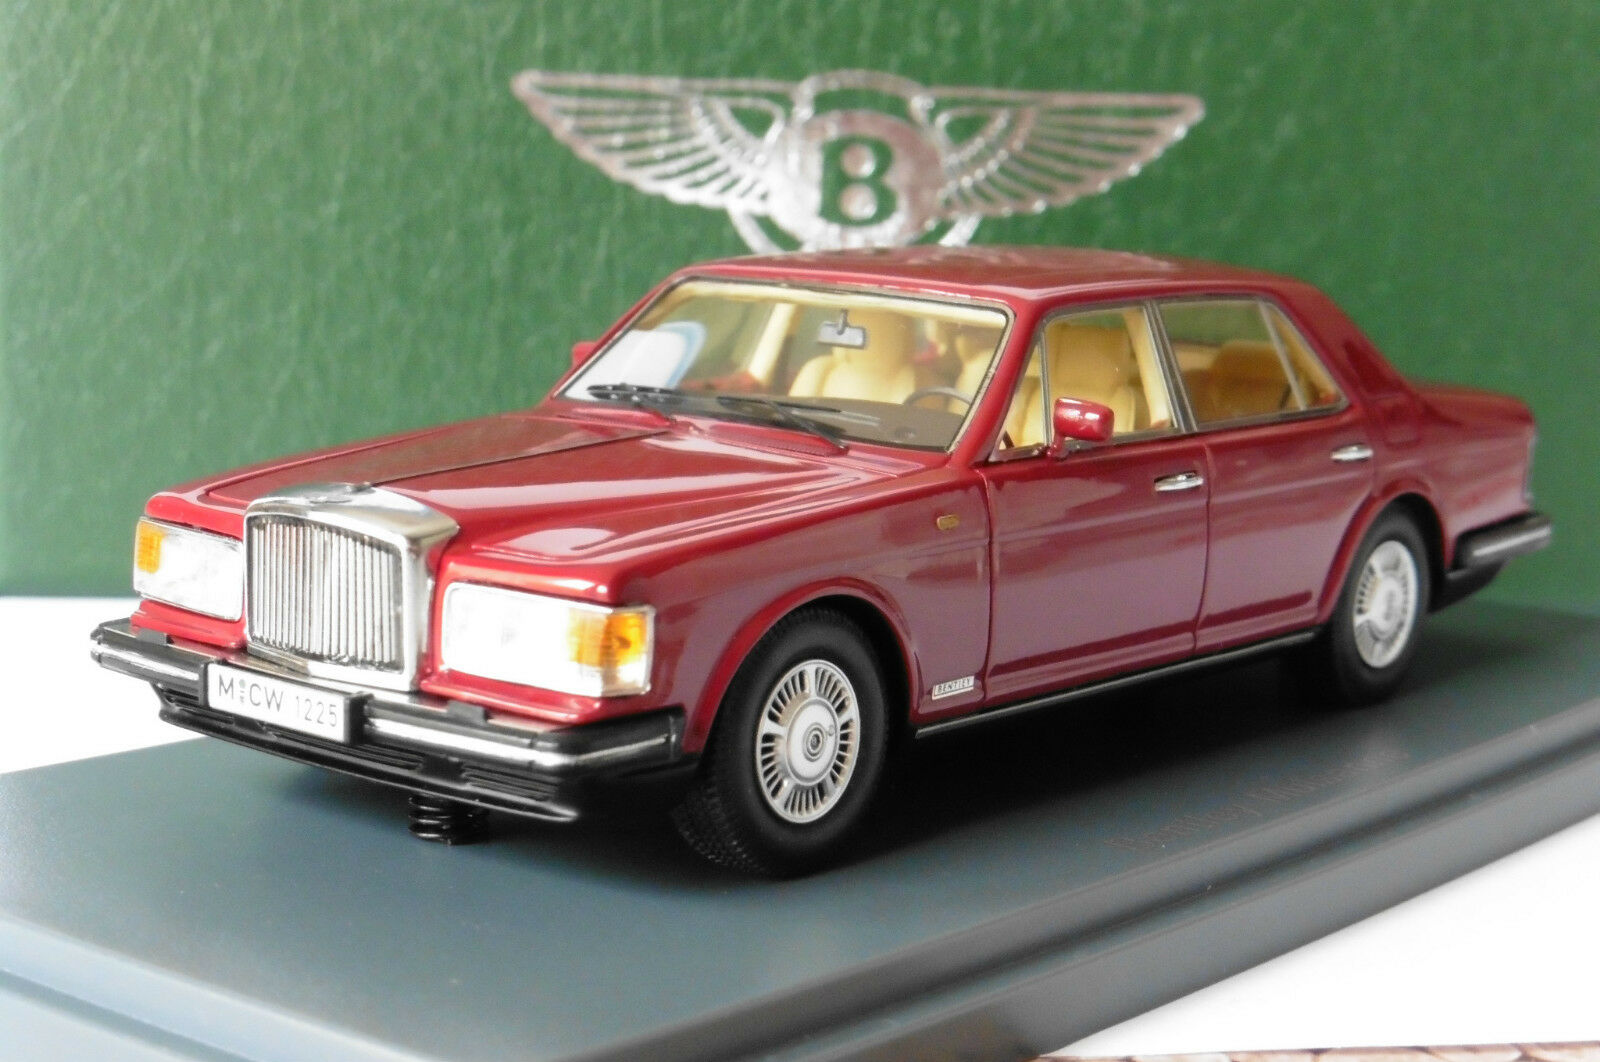 BENTLEY MULSANNE TURBO DARK RED 1982 NEO 44173 44173 44173 1 43 DUNKEL red red FONCE LHD 2e8630